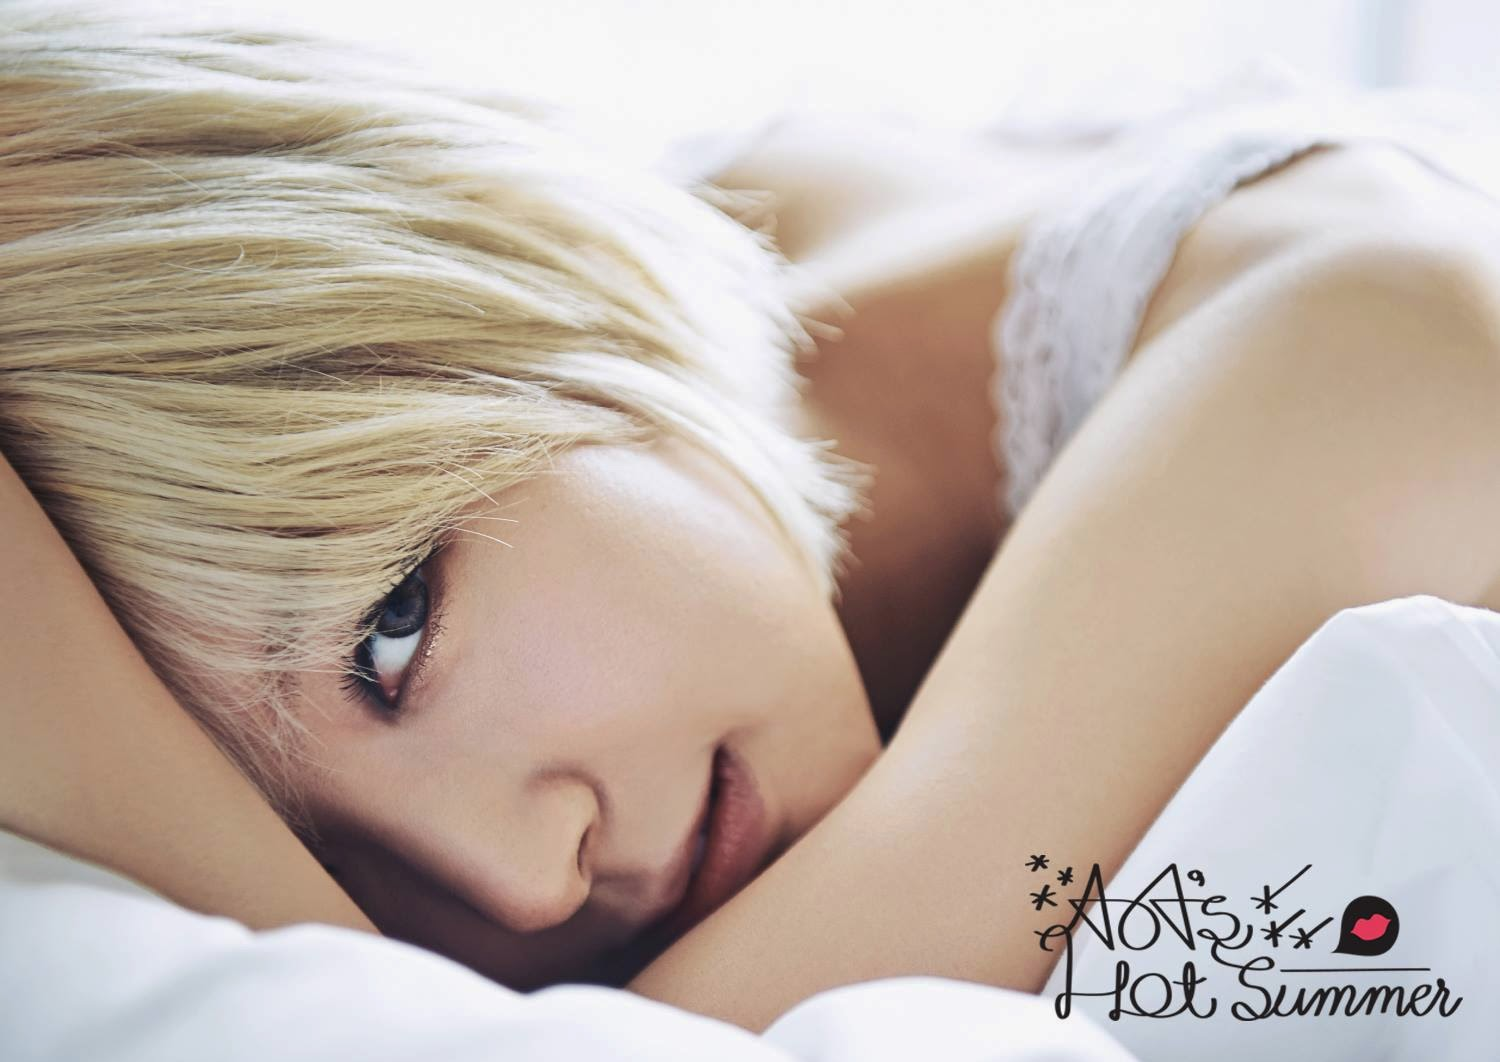 Choa AoA Photobook Hot Summer